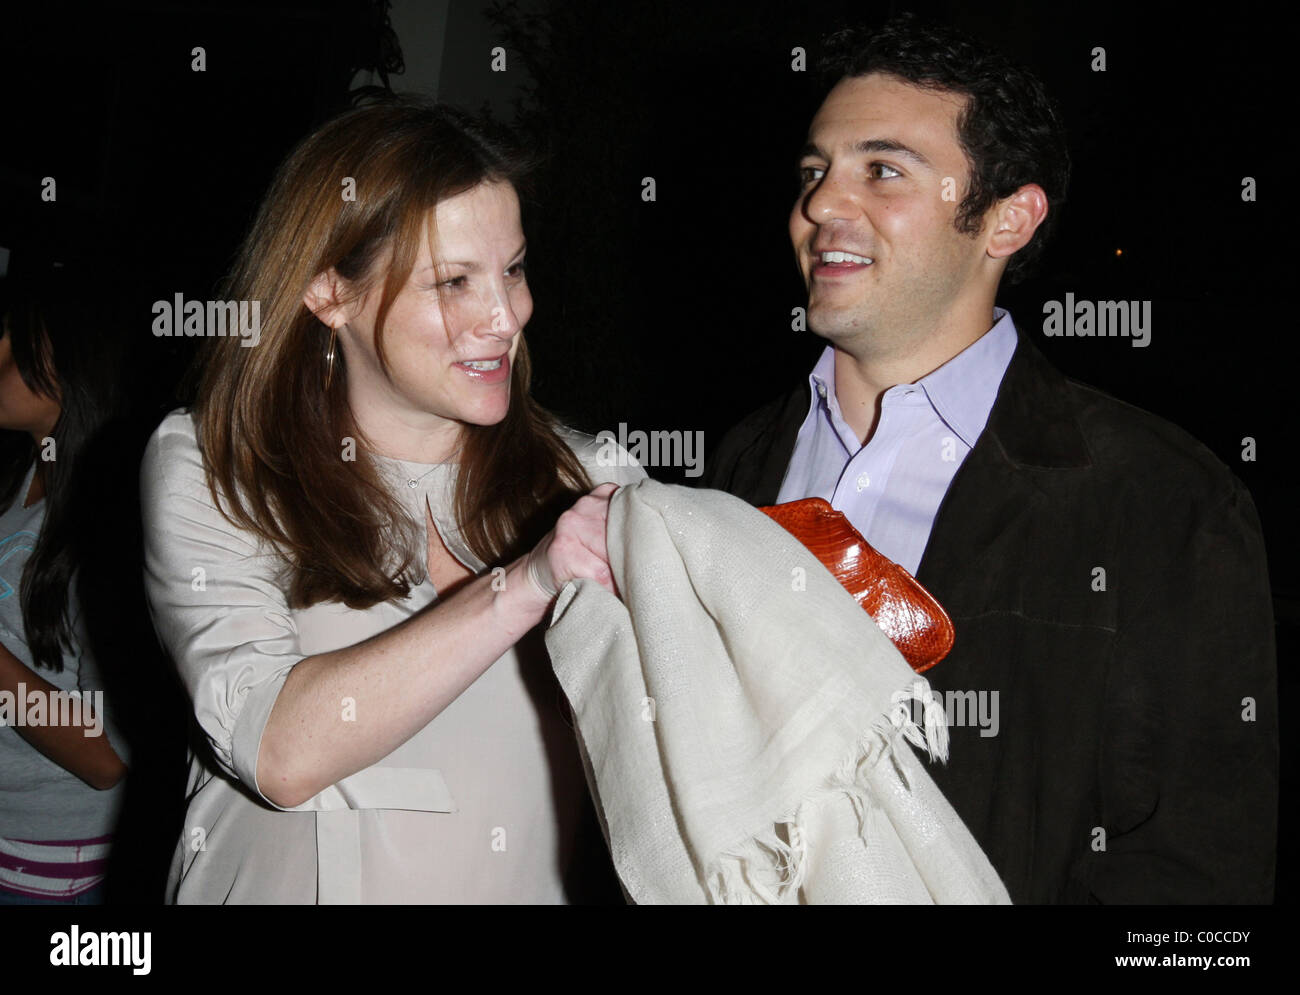 fred savage and pregnant wife jennifer lynn stone leaving stk stock photo royalty free image. Black Bedroom Furniture Sets. Home Design Ideas